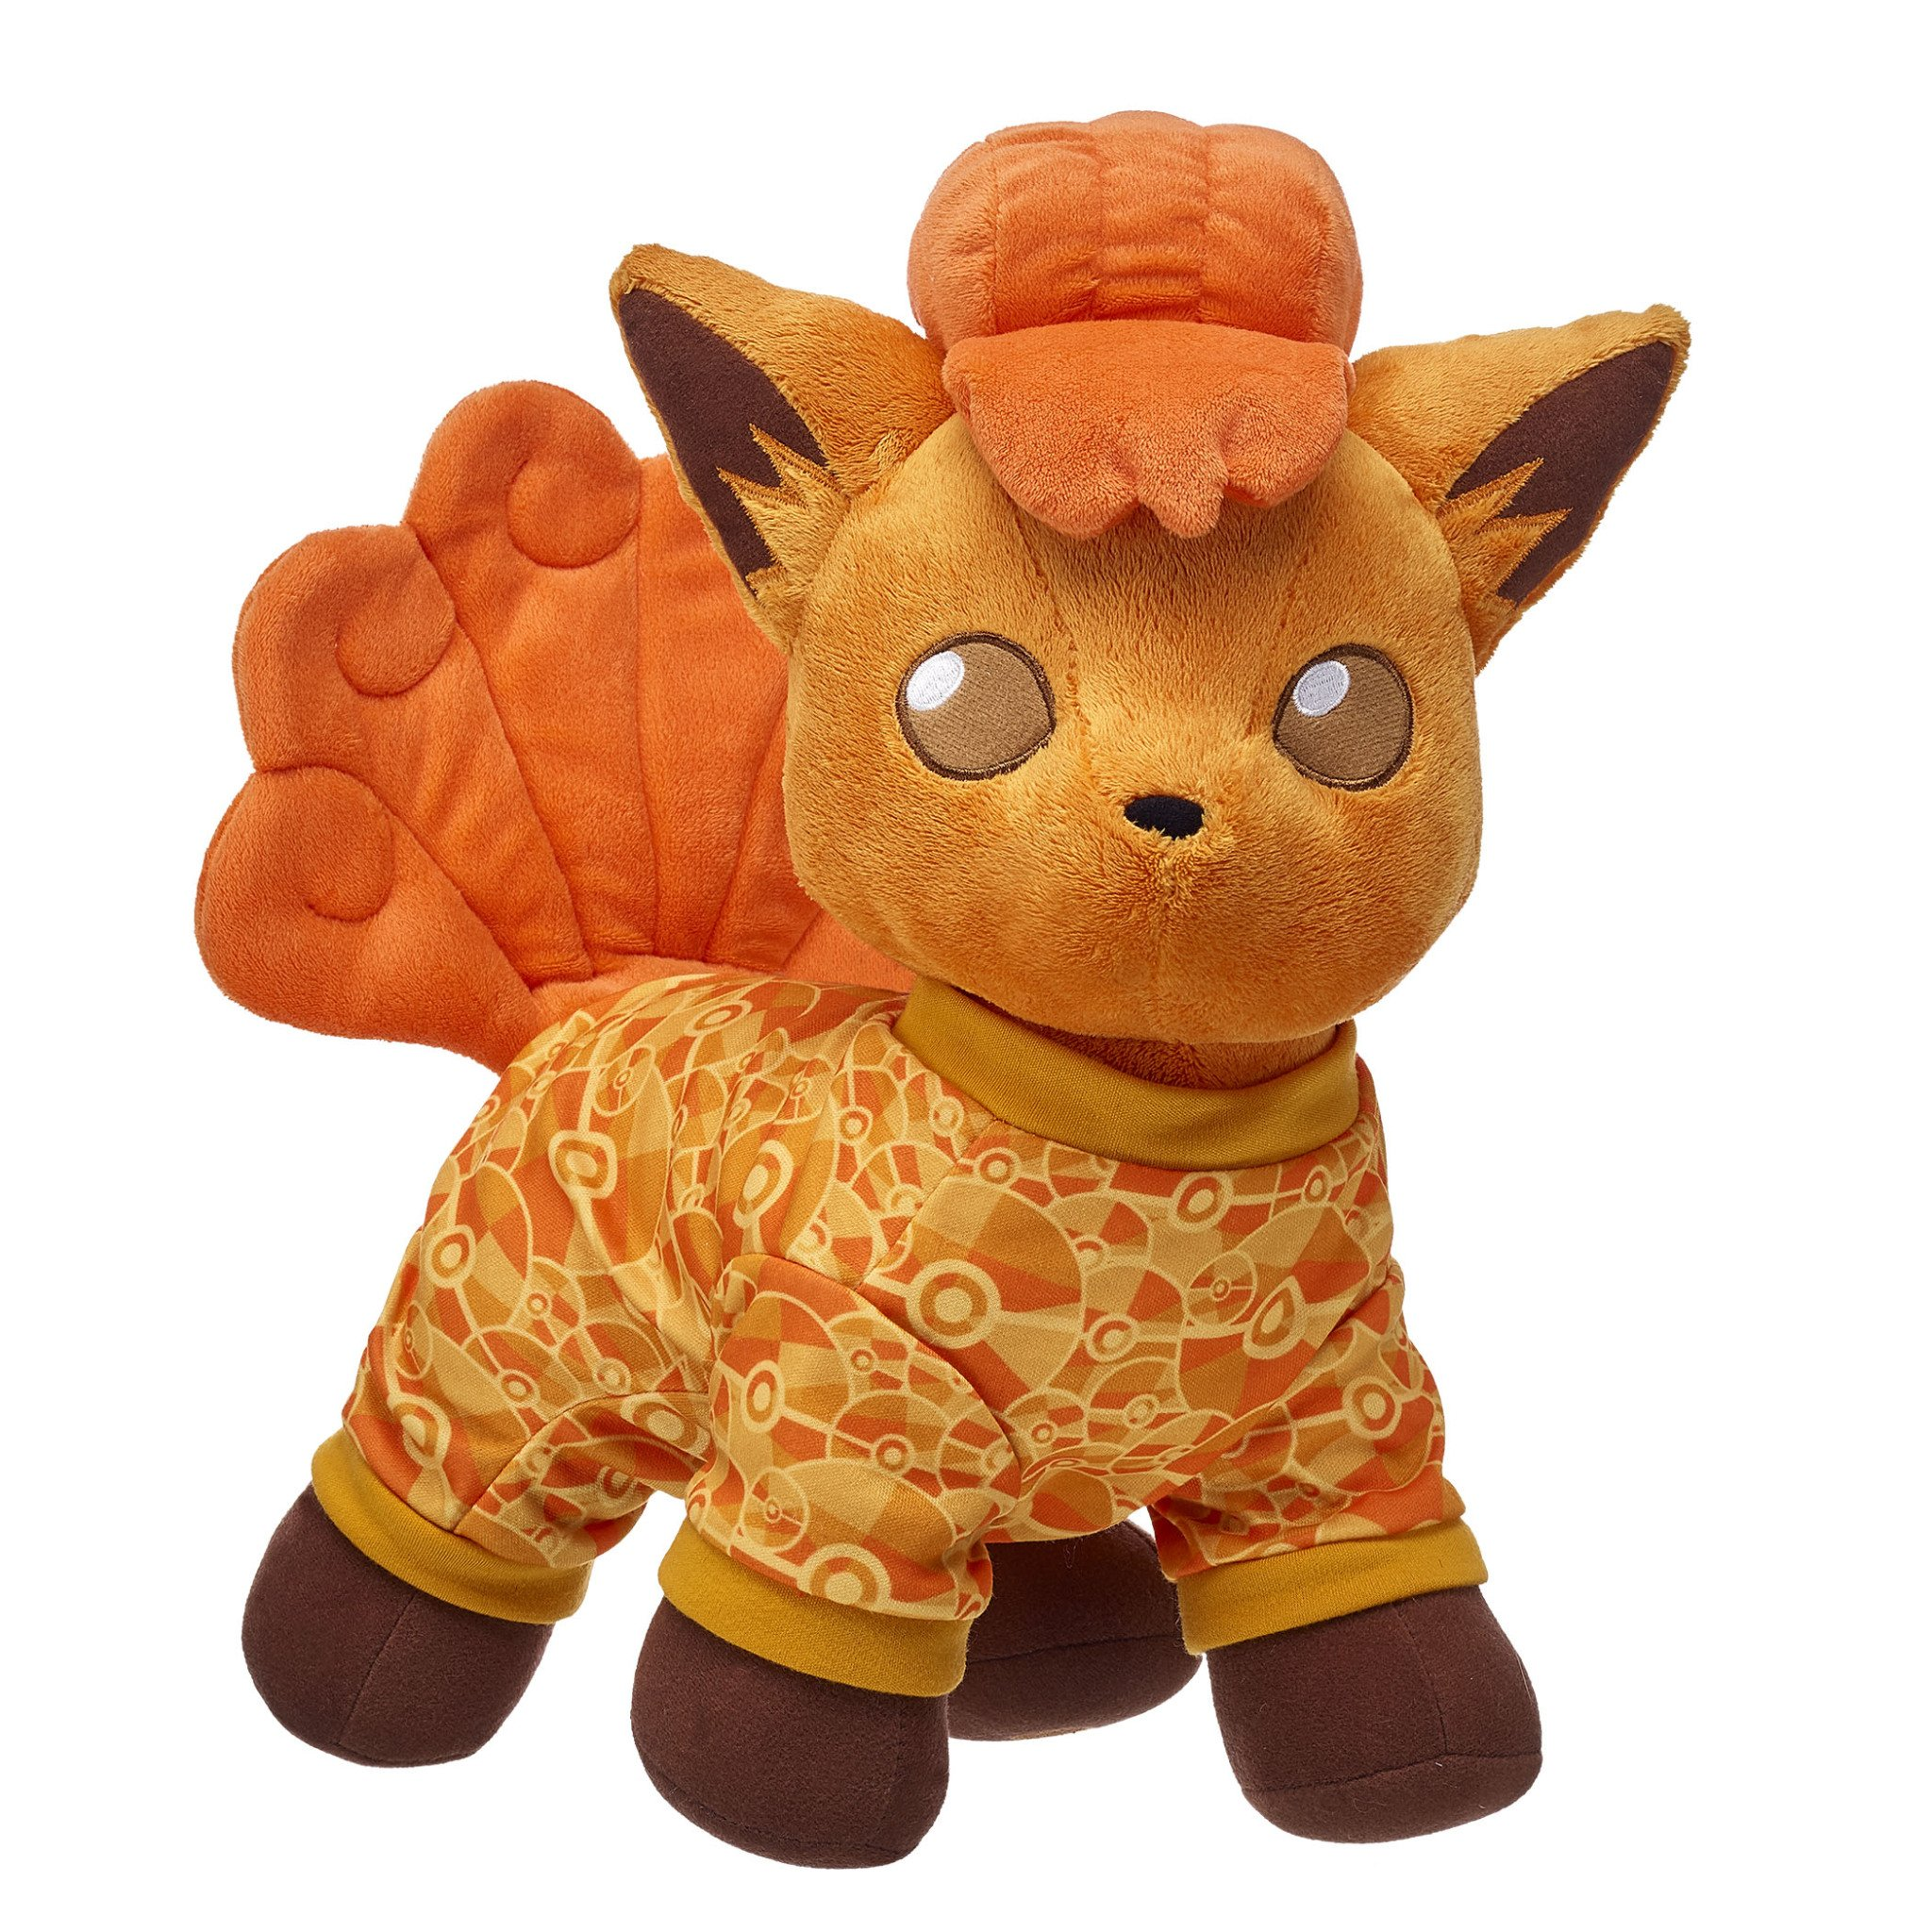 Build-a-Bear Adding Vulpix To Its Lineup